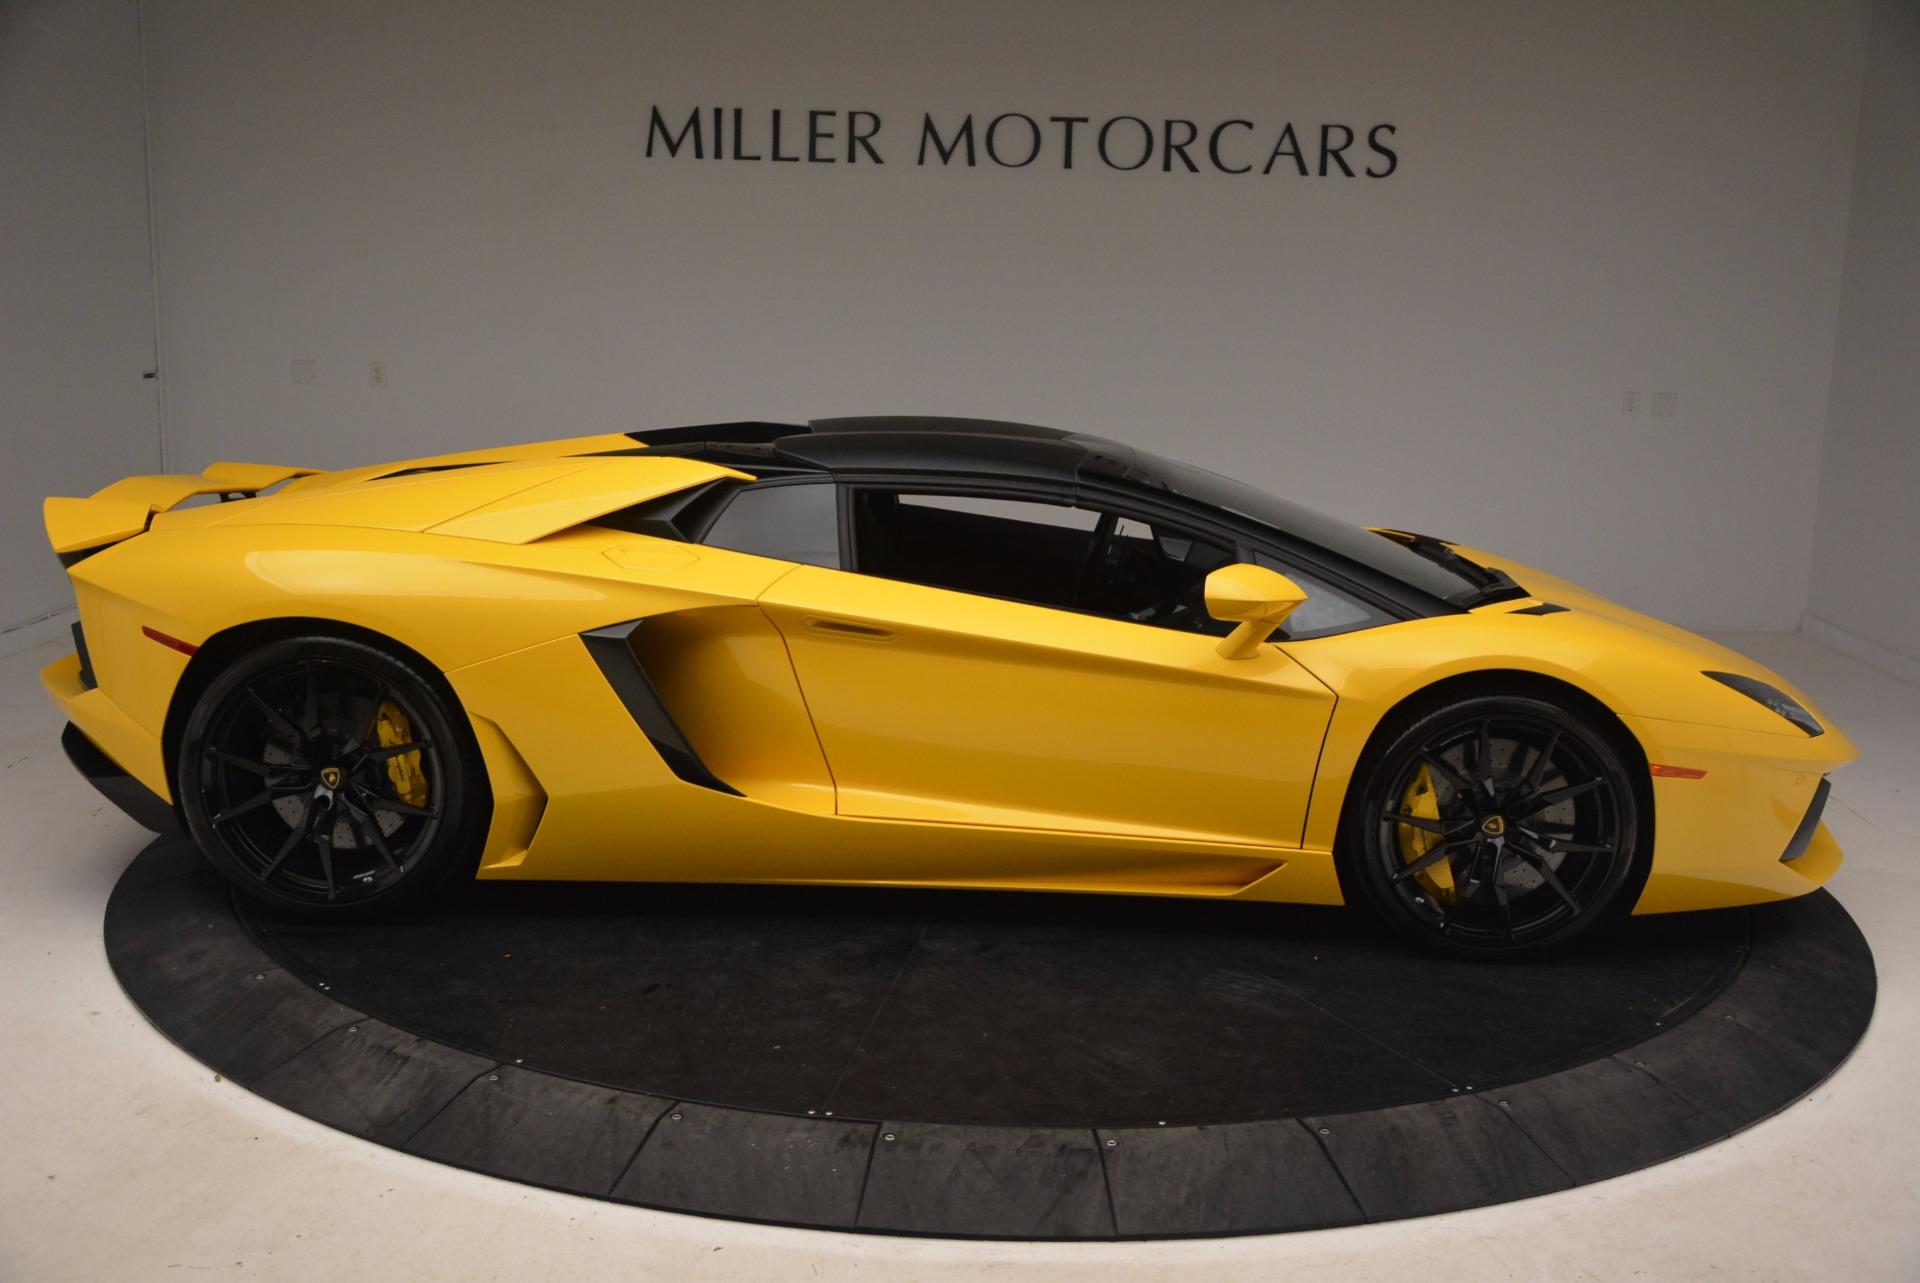 Used 2015 Lamborghini Aventador LP 700-4 Roadster For Sale In Westport, CT 1774_p28